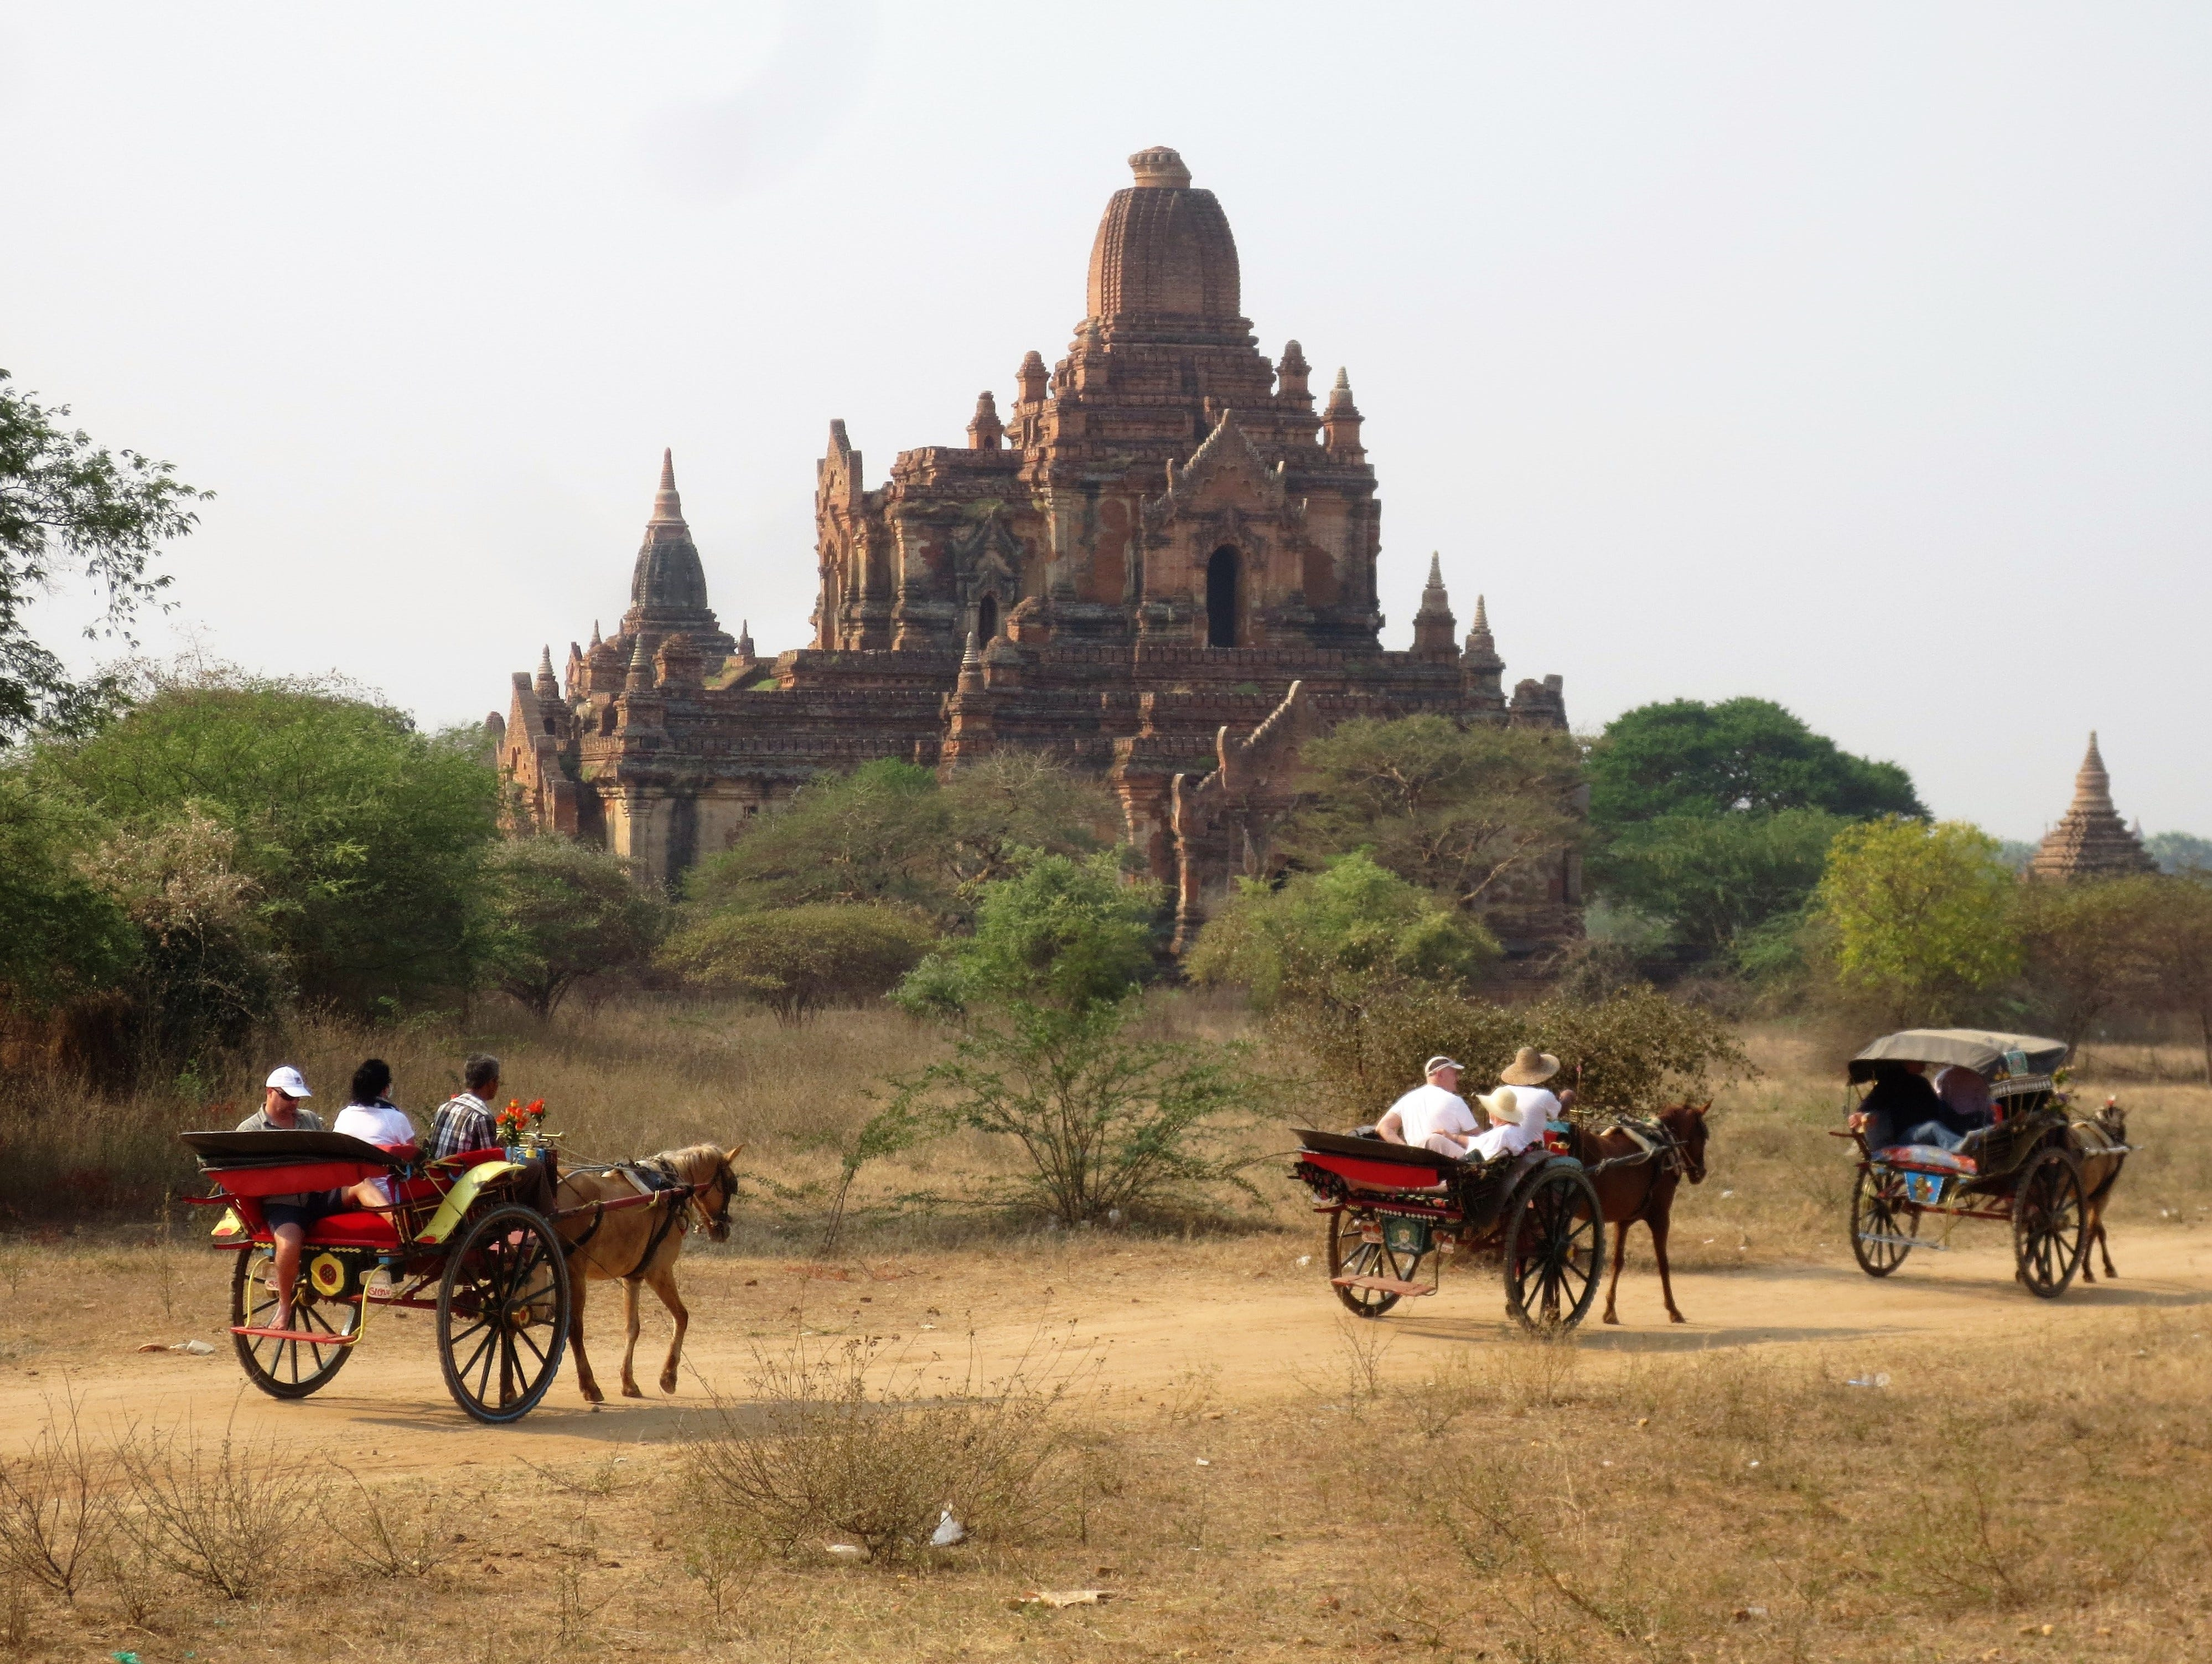 Horse carts take visitors past some of the ancient temples in Bagan, Myanmar.